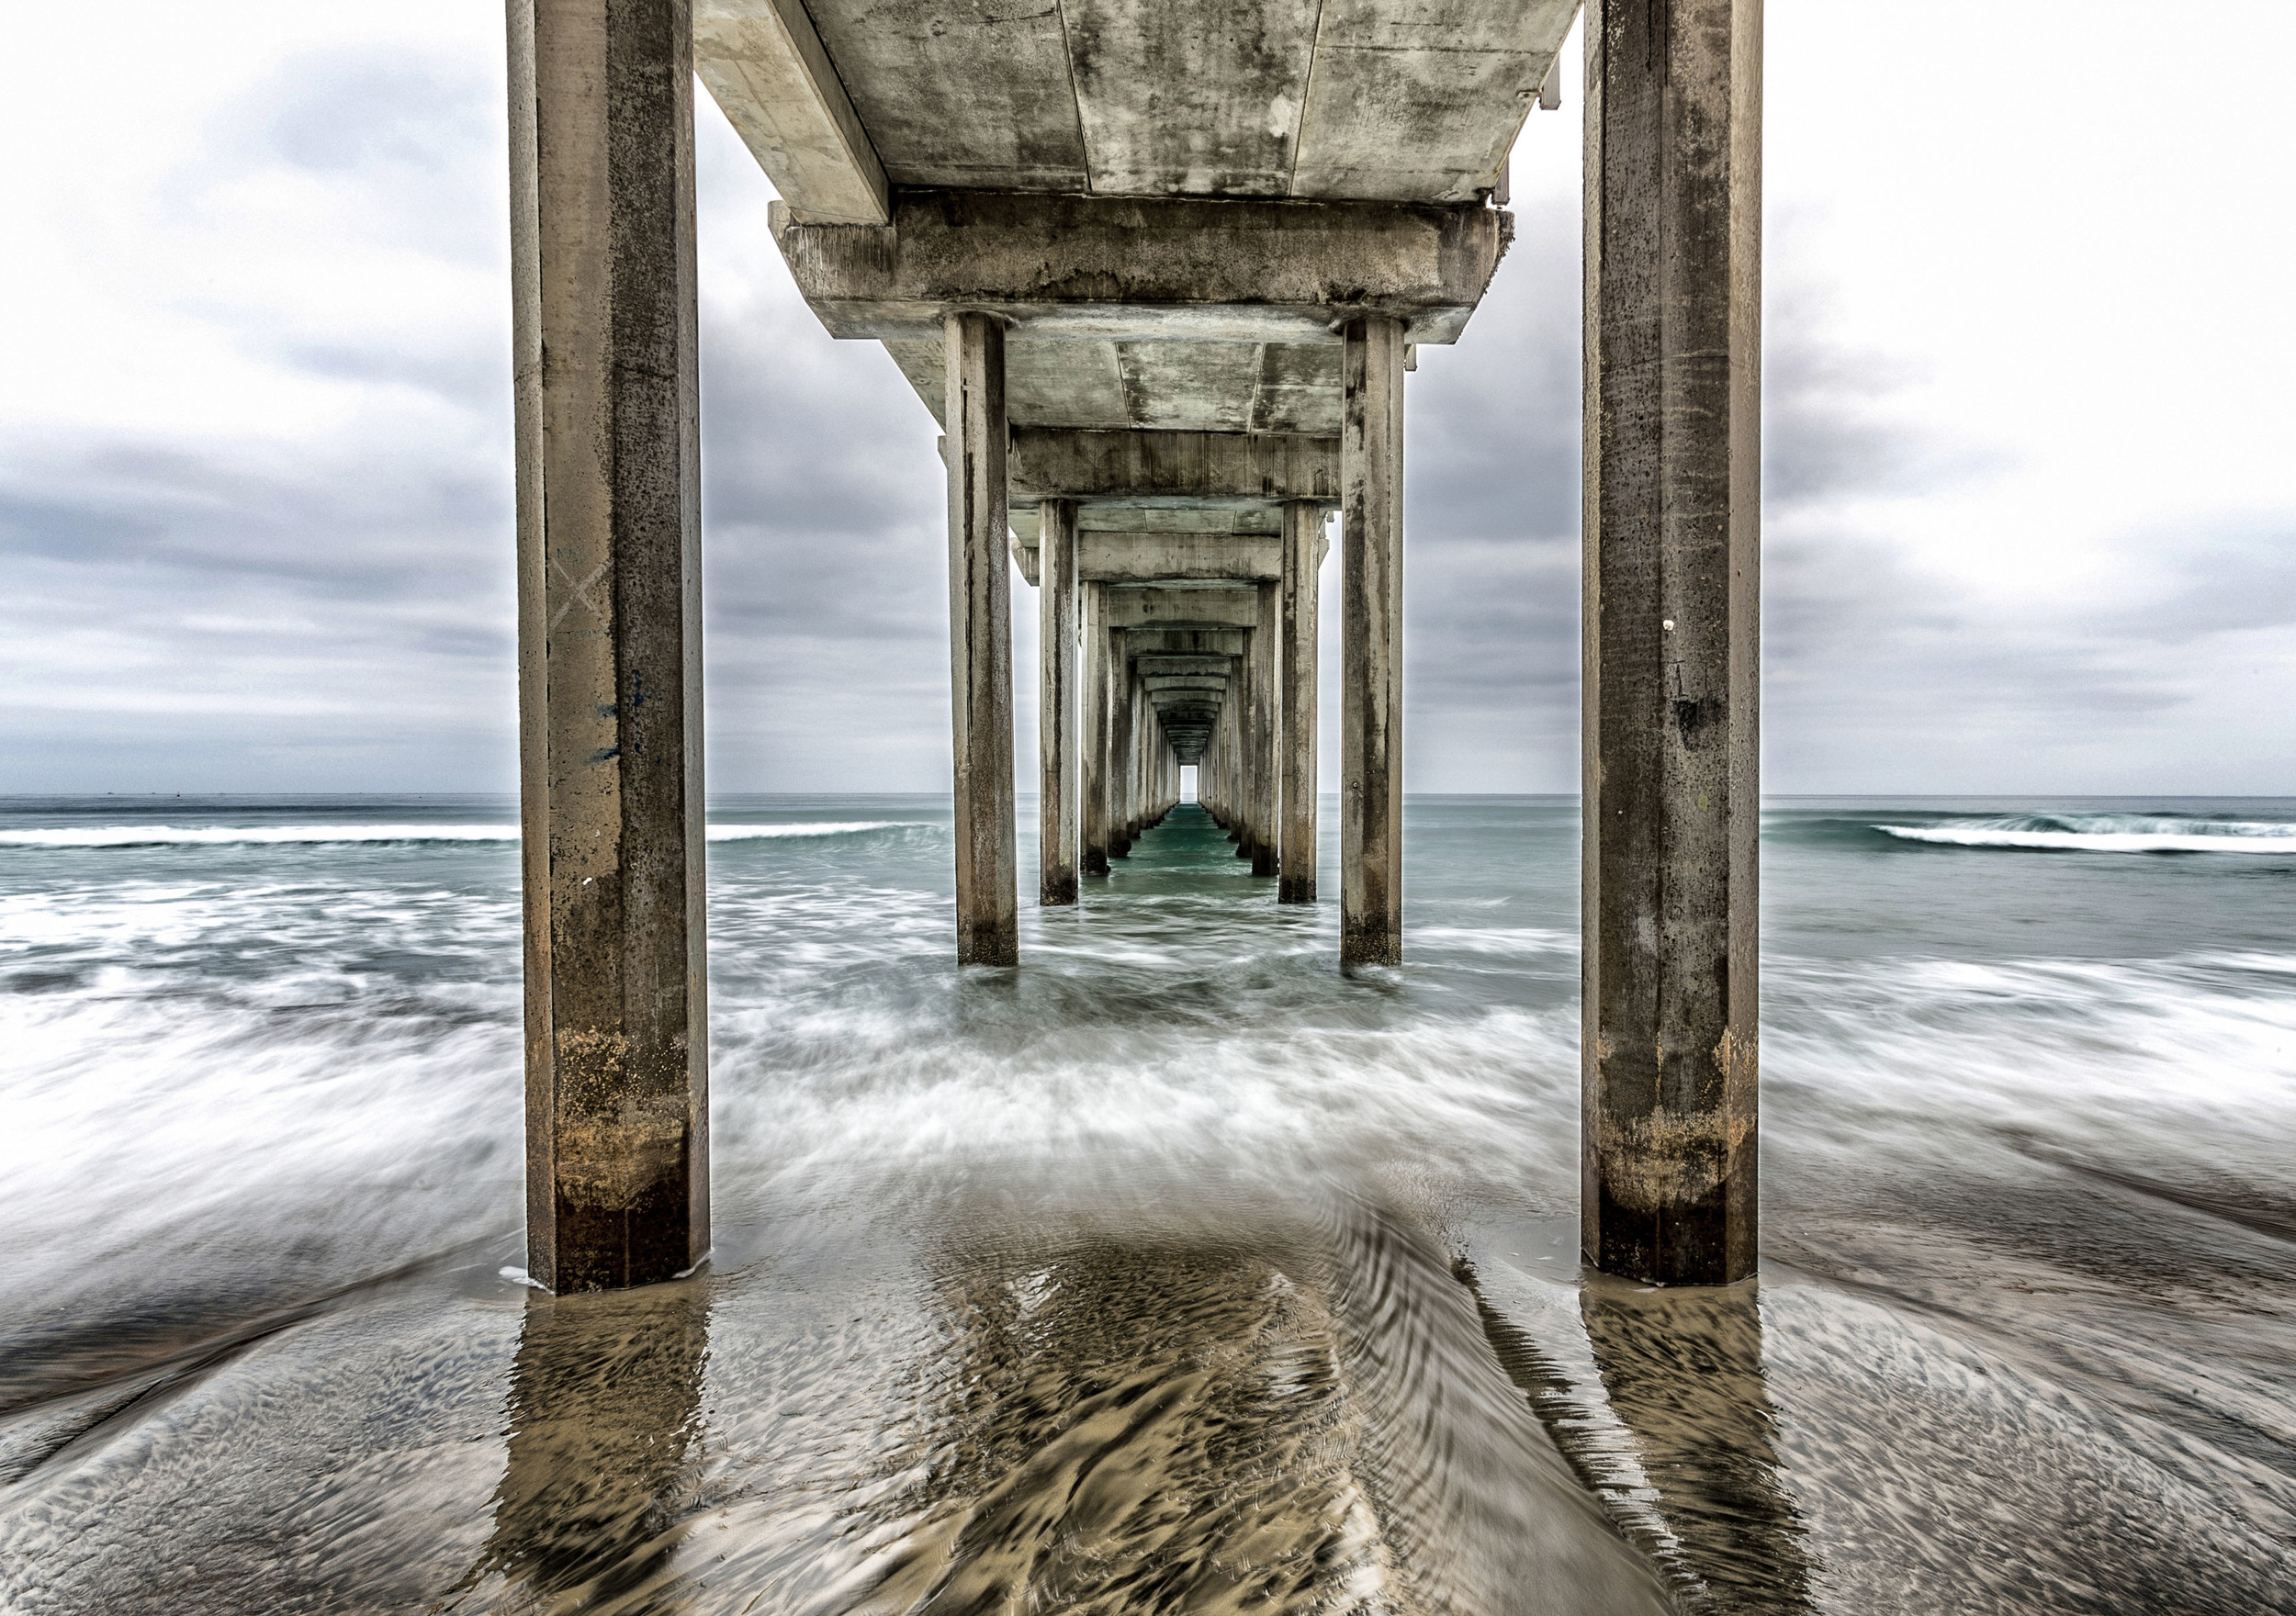 Waves are captured in mid-cycle at dawn beneath this oceanography research pier in La Jolla, California.